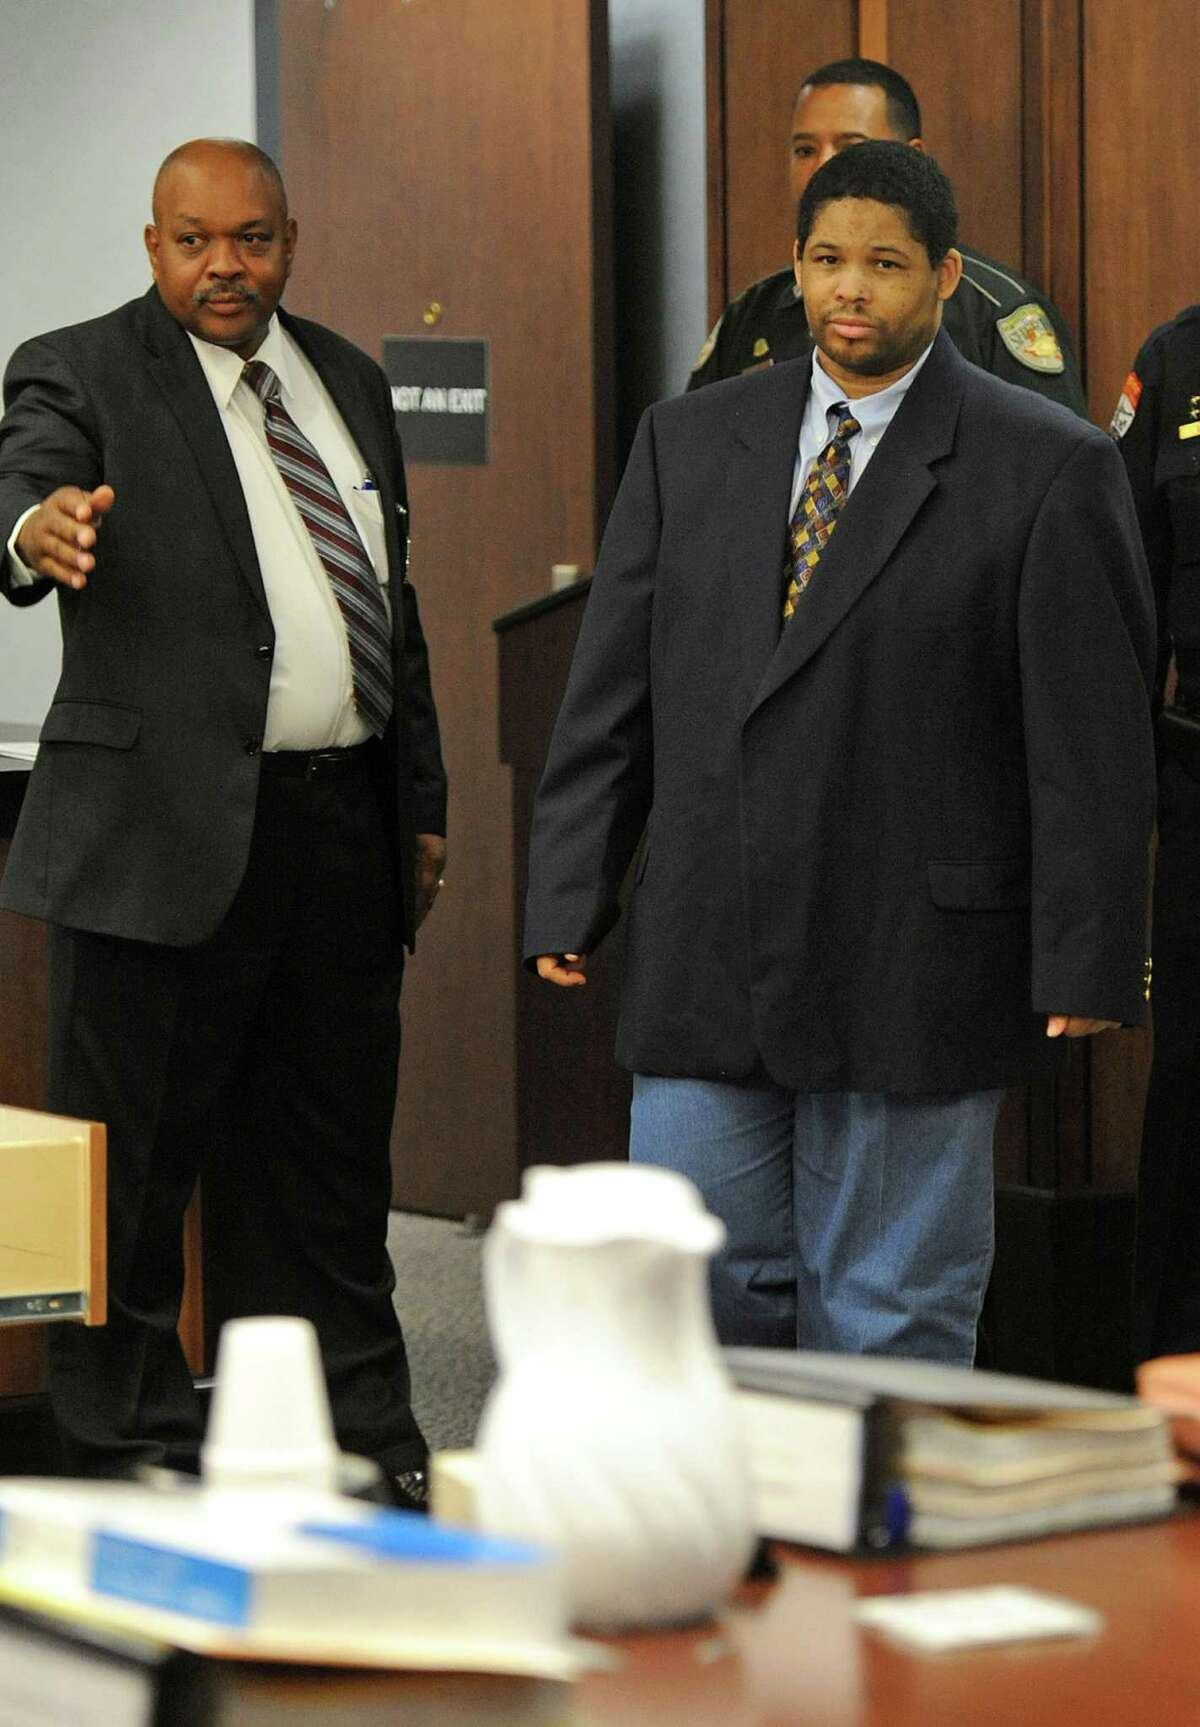 Bartholomew Granger enters the Galveston County courtroom shortly before closing arguments on Tuesday. After the arguments the jury was excused to deliberate on capital charges for the shooting death of Minnie Ray Sebolt. Guiseppe Barranco/The Enteprise